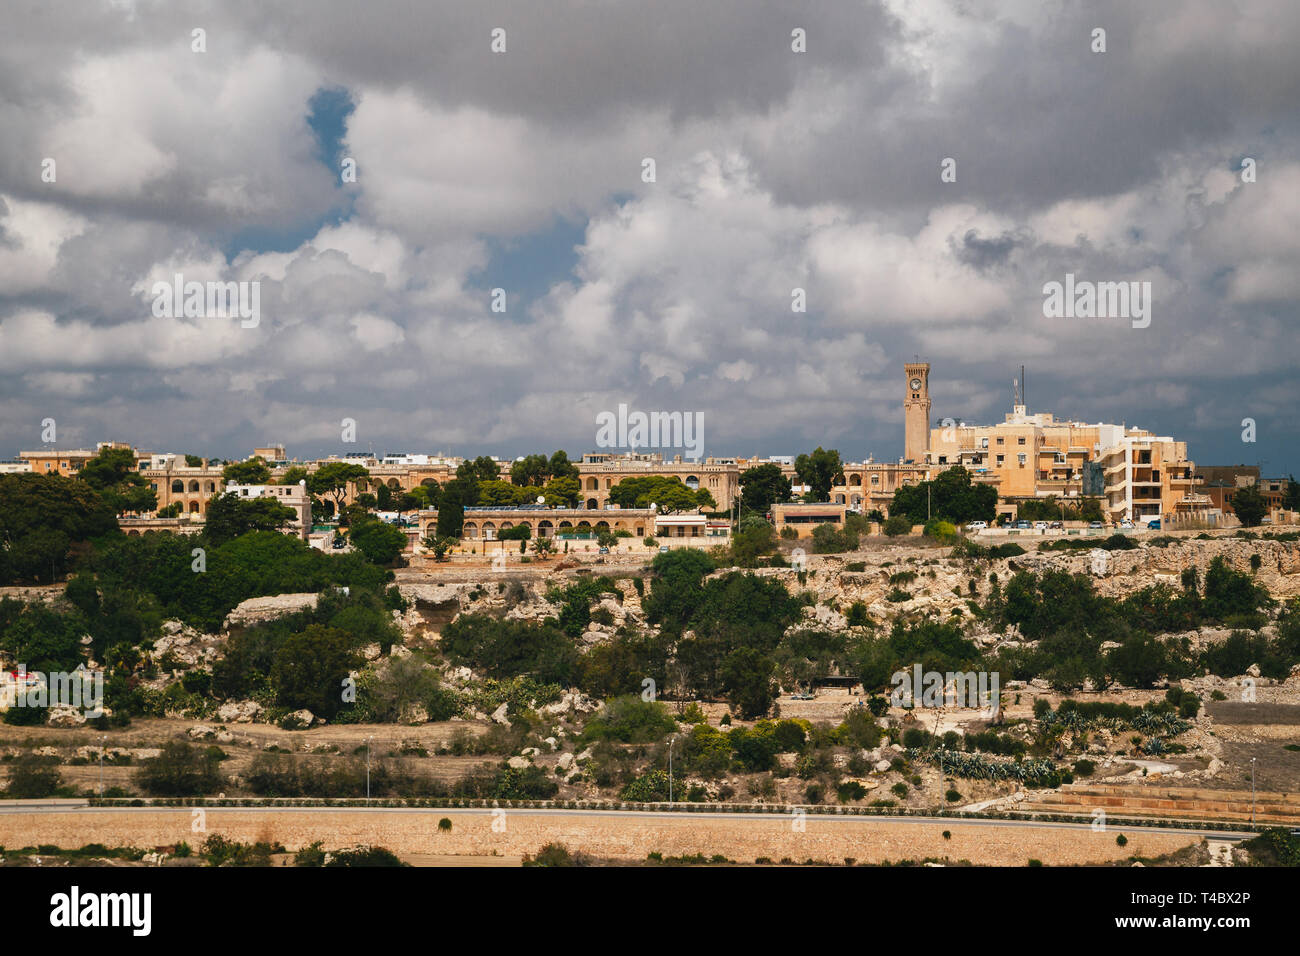 Beautiful panoramic view of Malta island and Mtarfa Clock Tower from the top of Bastion Square at Mdina, ancient capital of Malta, fortified medieval - Stock Image